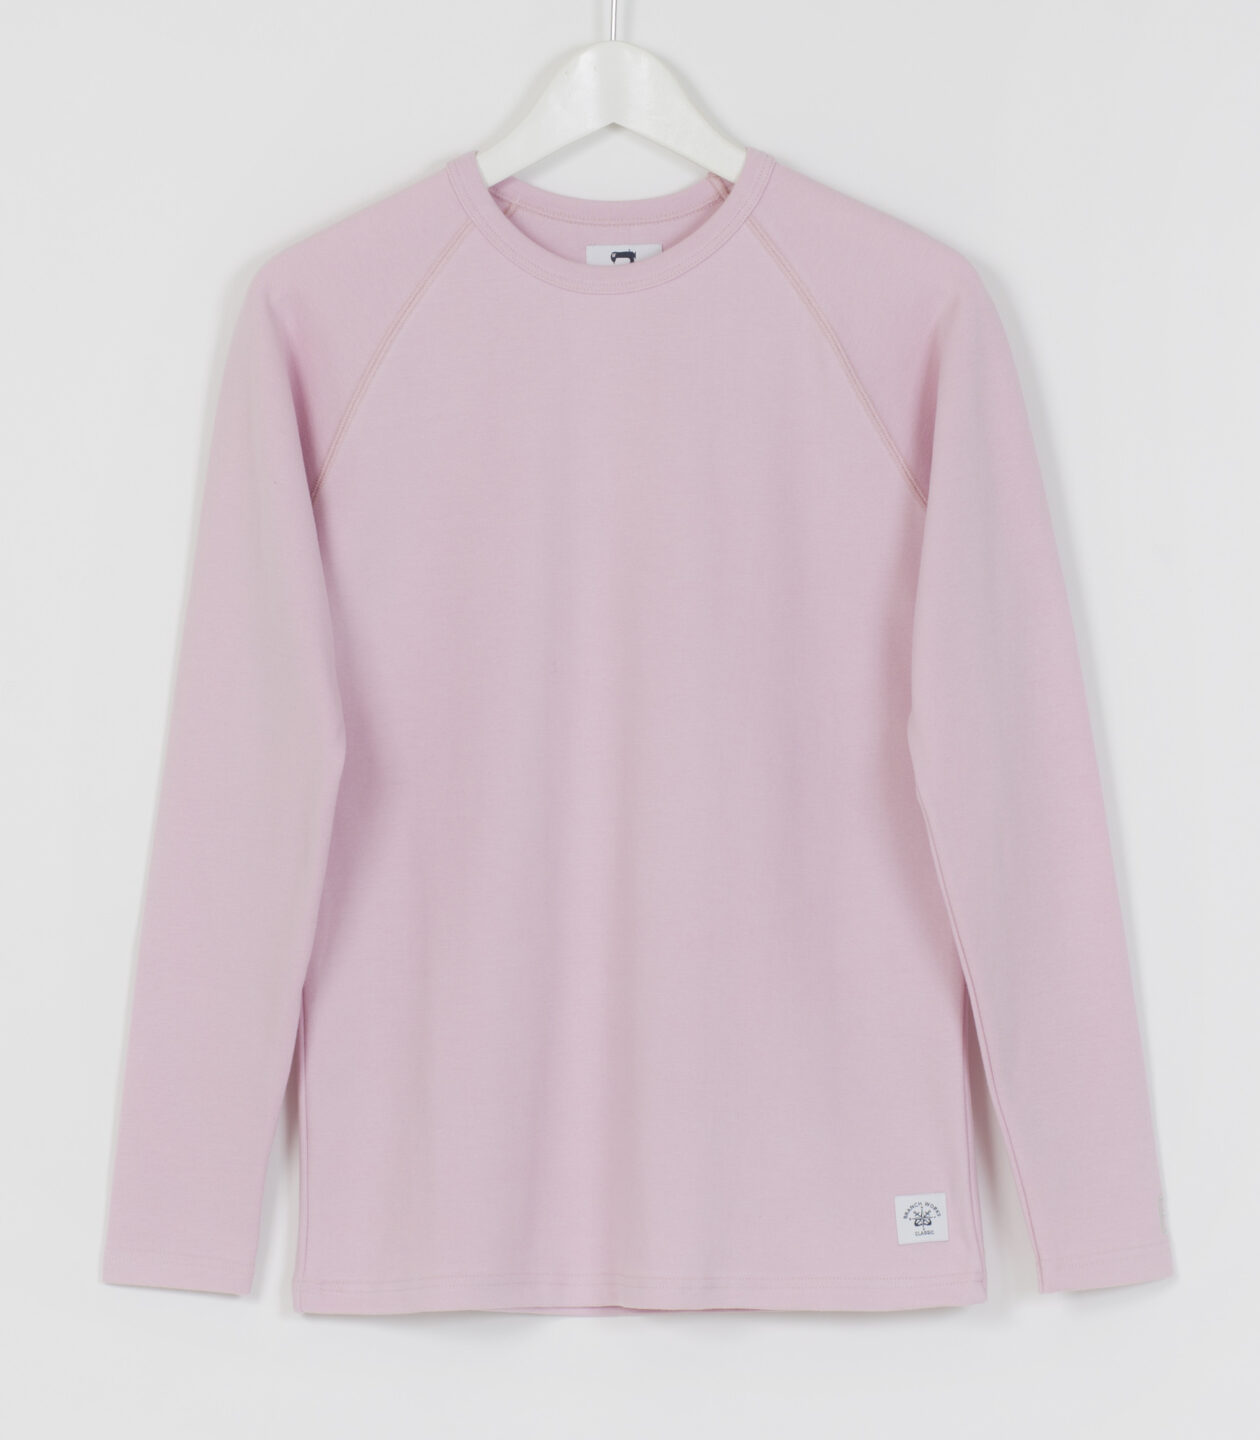 DY1-1030 S.pink